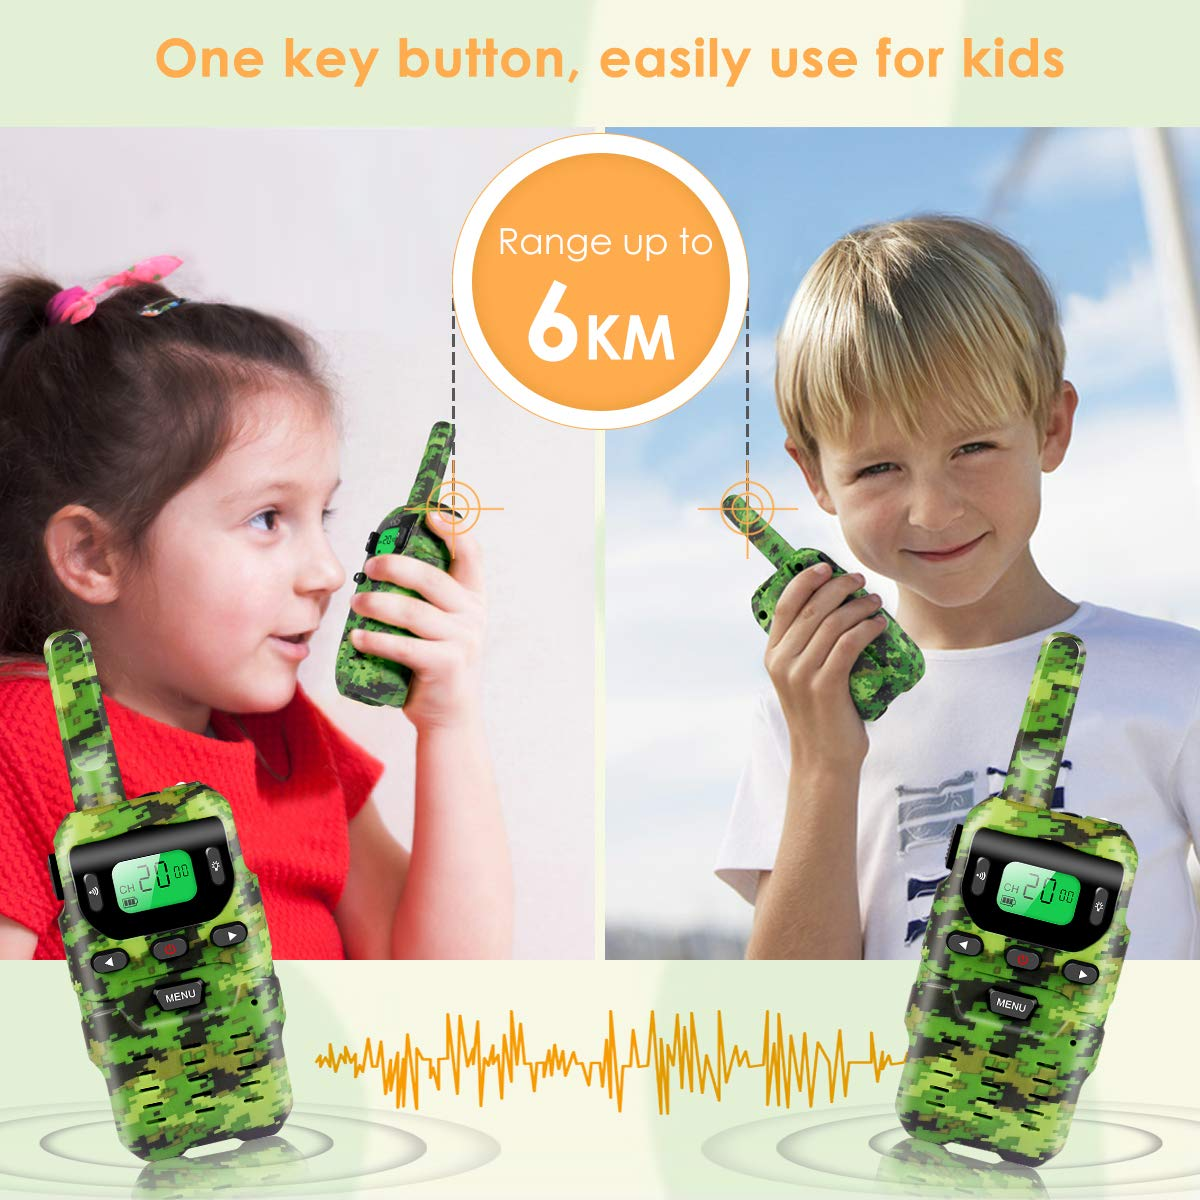 UOKOO Walkie Talkies for Kids, Toys for 3-12 Year Old Boys 22 Channel 3 Mile Long Range Kids Toys and Kids Walkie Talkies, and Top Toys for for 3 4 5 6 7 8 9 Year Old Boy and Girls by UOKOO (Image #3)